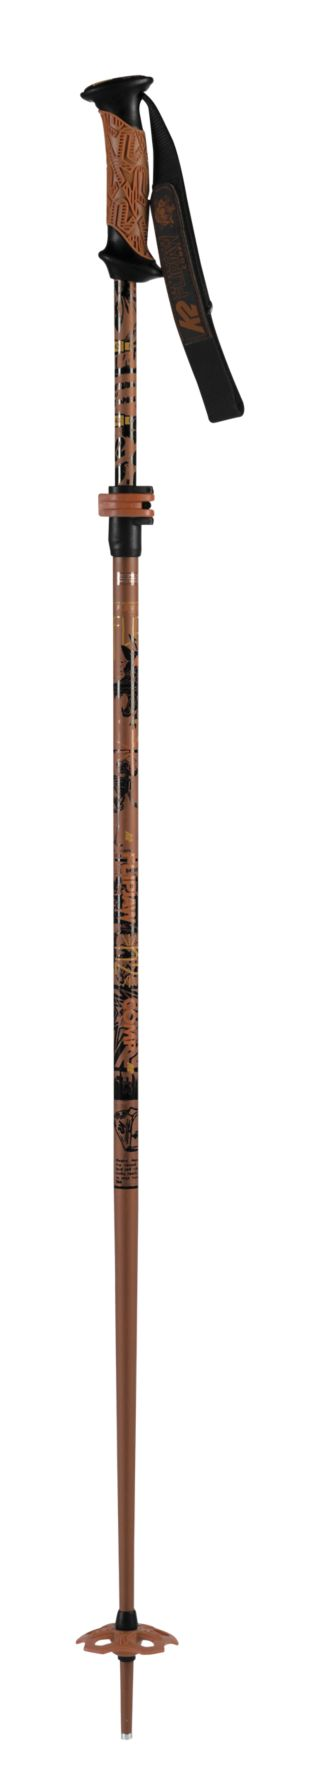 K2 Skis - FlipJaw Comp Ski Pole